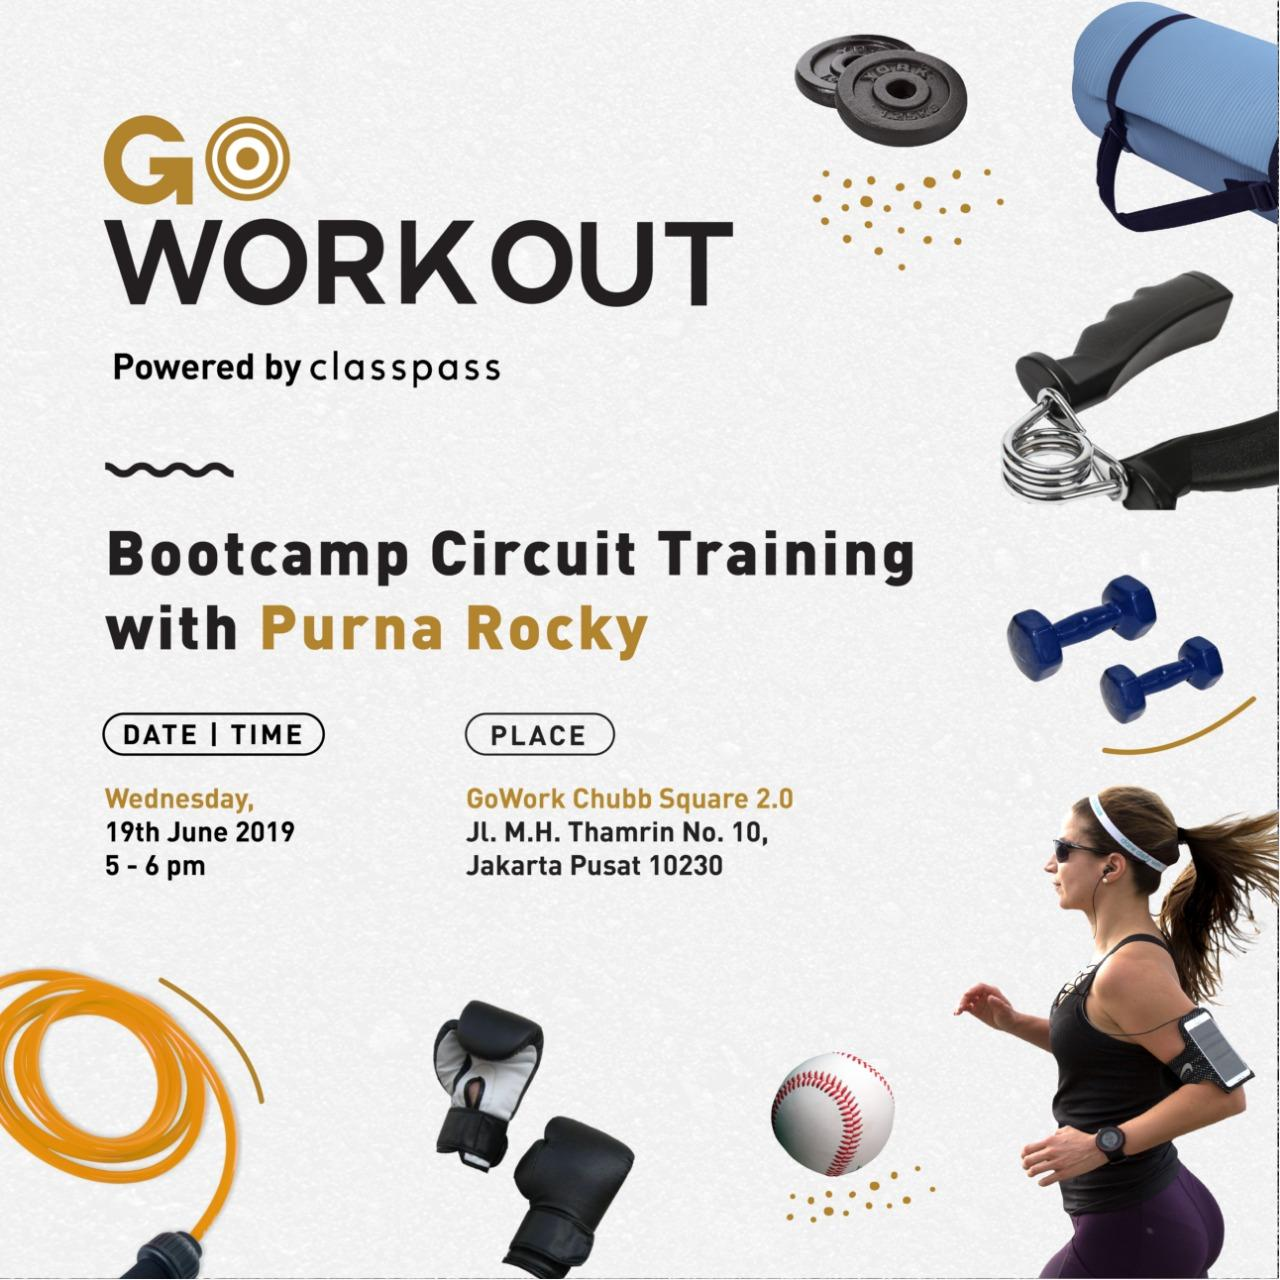 GoWorkOUT - Bootcamp Circuit Training